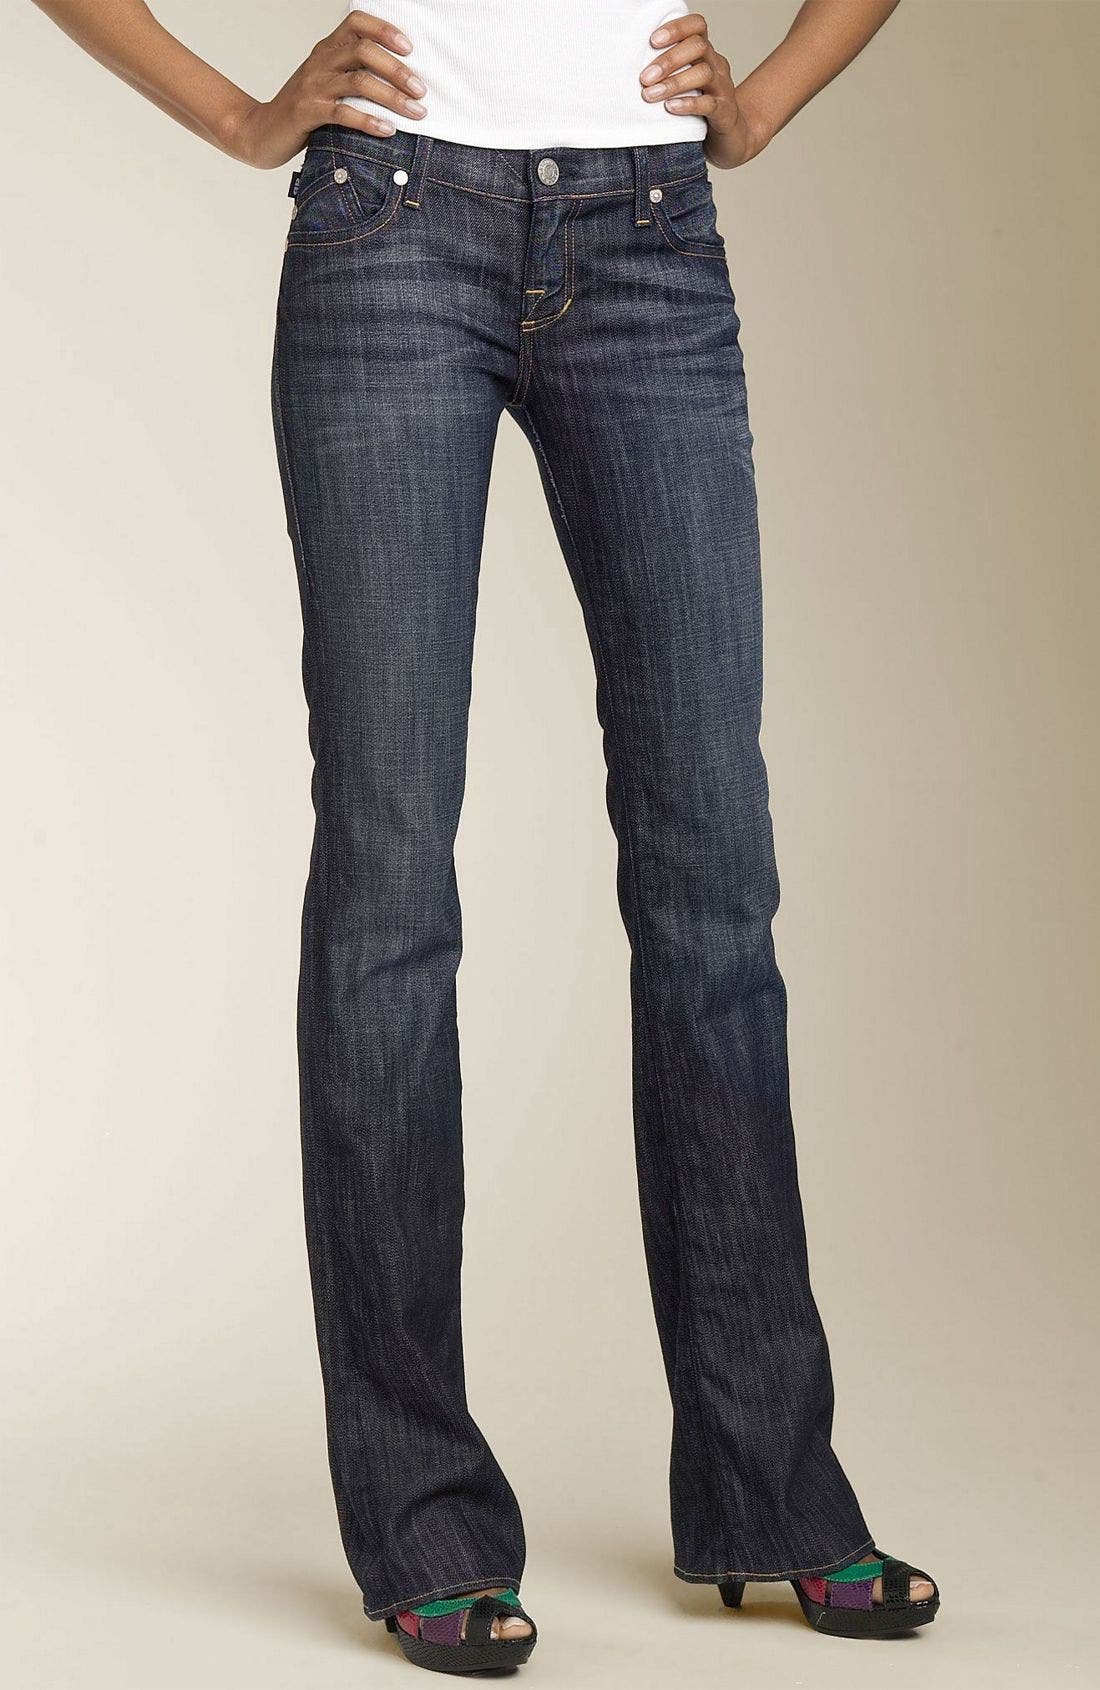 ROCK & REPUBLIC,                             'Kasandra' Bootcut Stretch Jeans,                             Alternate thumbnail 2, color,                             400